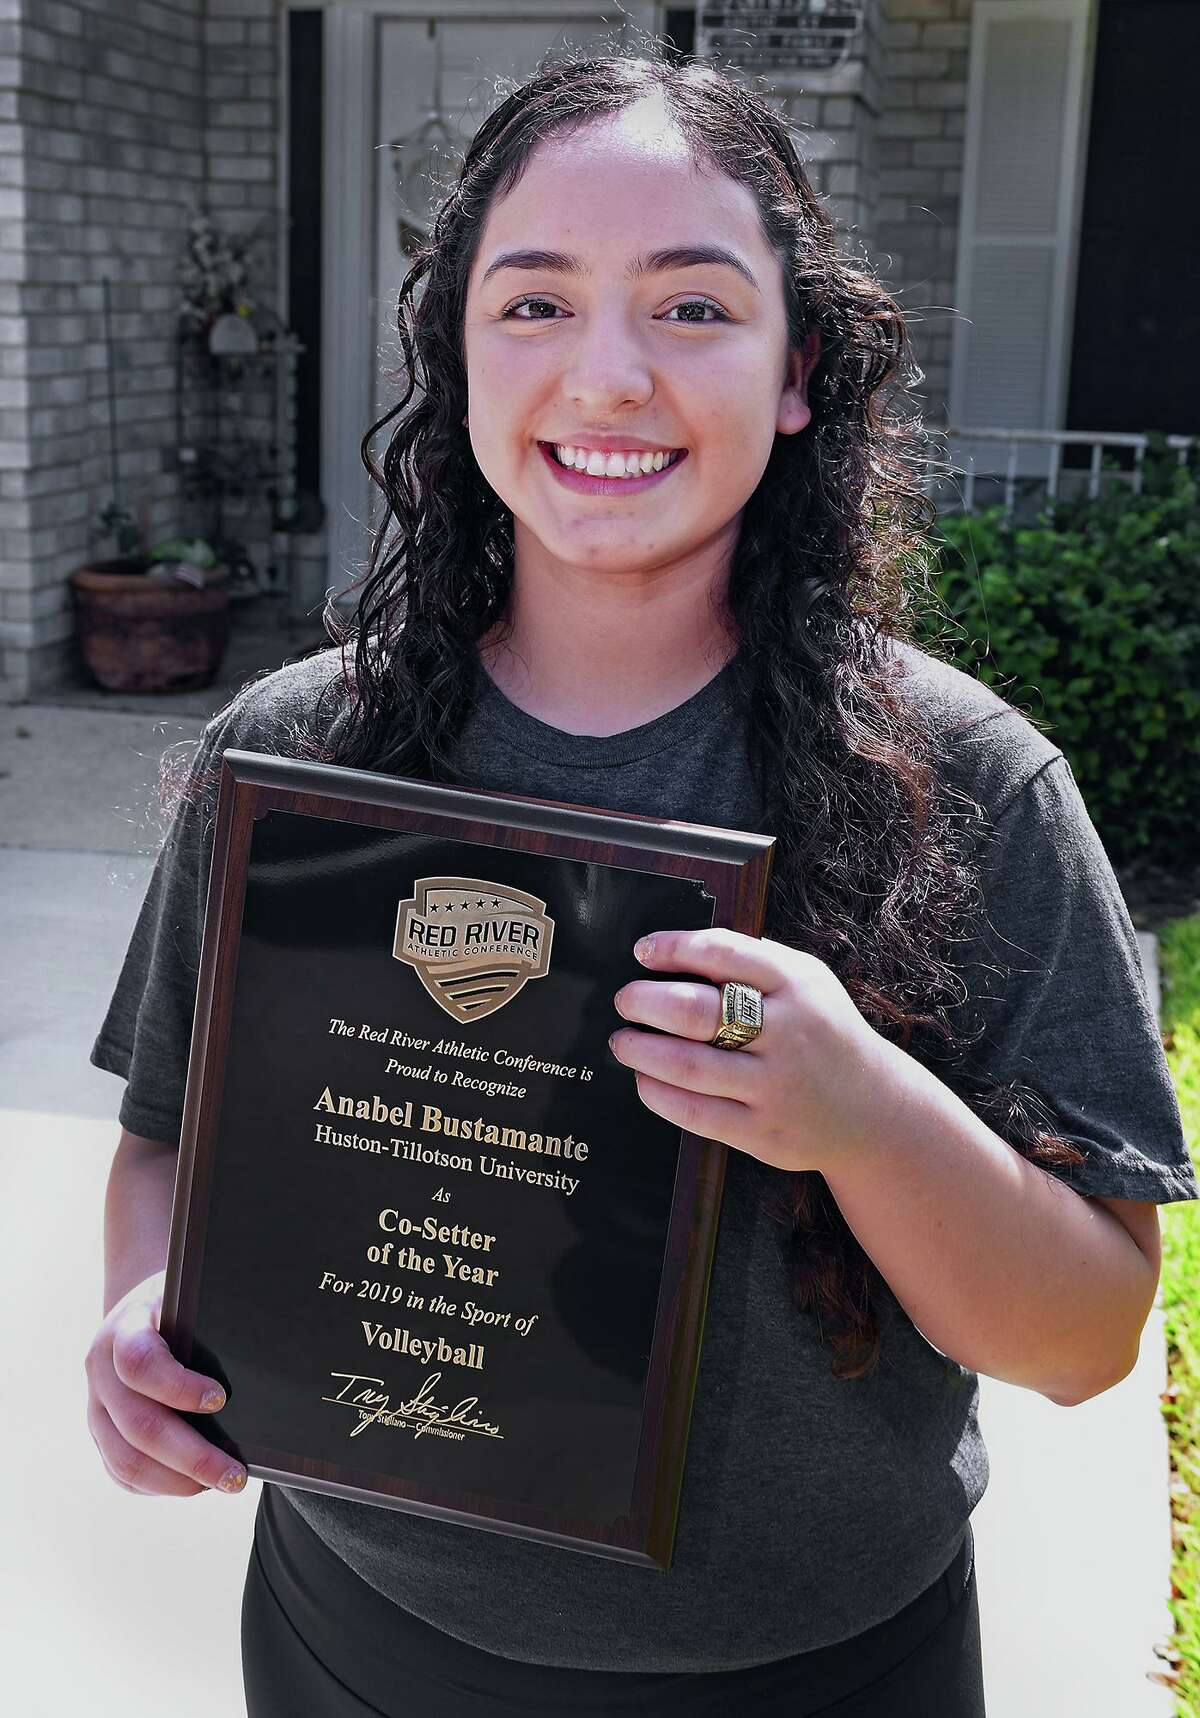 Former United High School volleyball player Anabel Bustamante shows the plaque and ring she won as a member of the Huston-Tillotson University volleyball team which won the Red River Conference in 2019. Bustamante was recognized as Co-Setter of the Year.